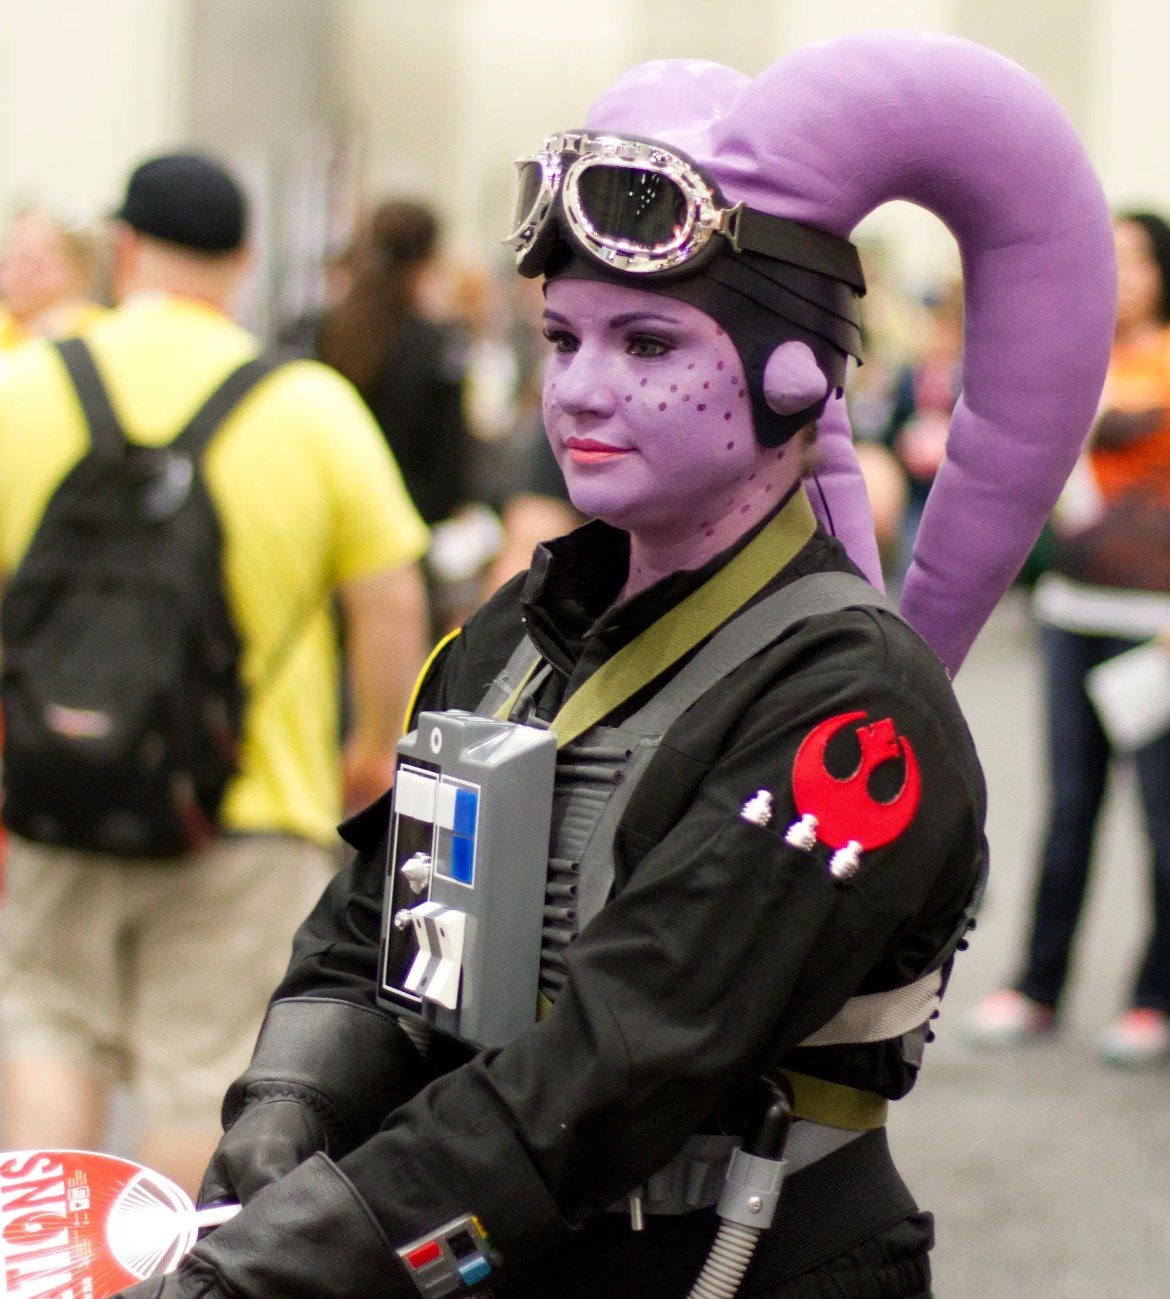 A plum-colored Twi'lek fighter pilot prepares to defend the Rebels.